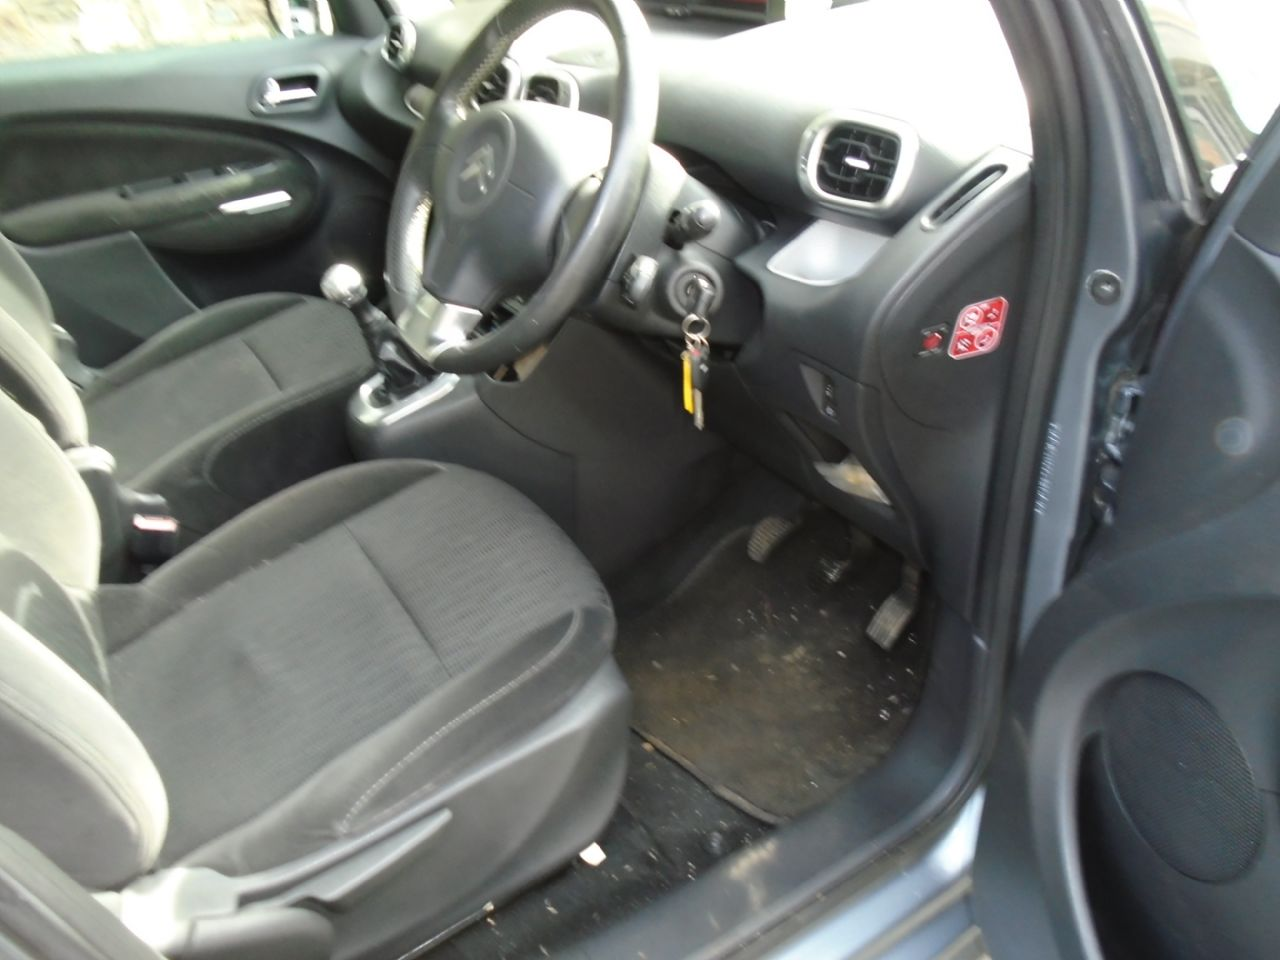 CITROEN C3 PICASSO 1.4VTi 16v 95HP Exclusive - Picture 6